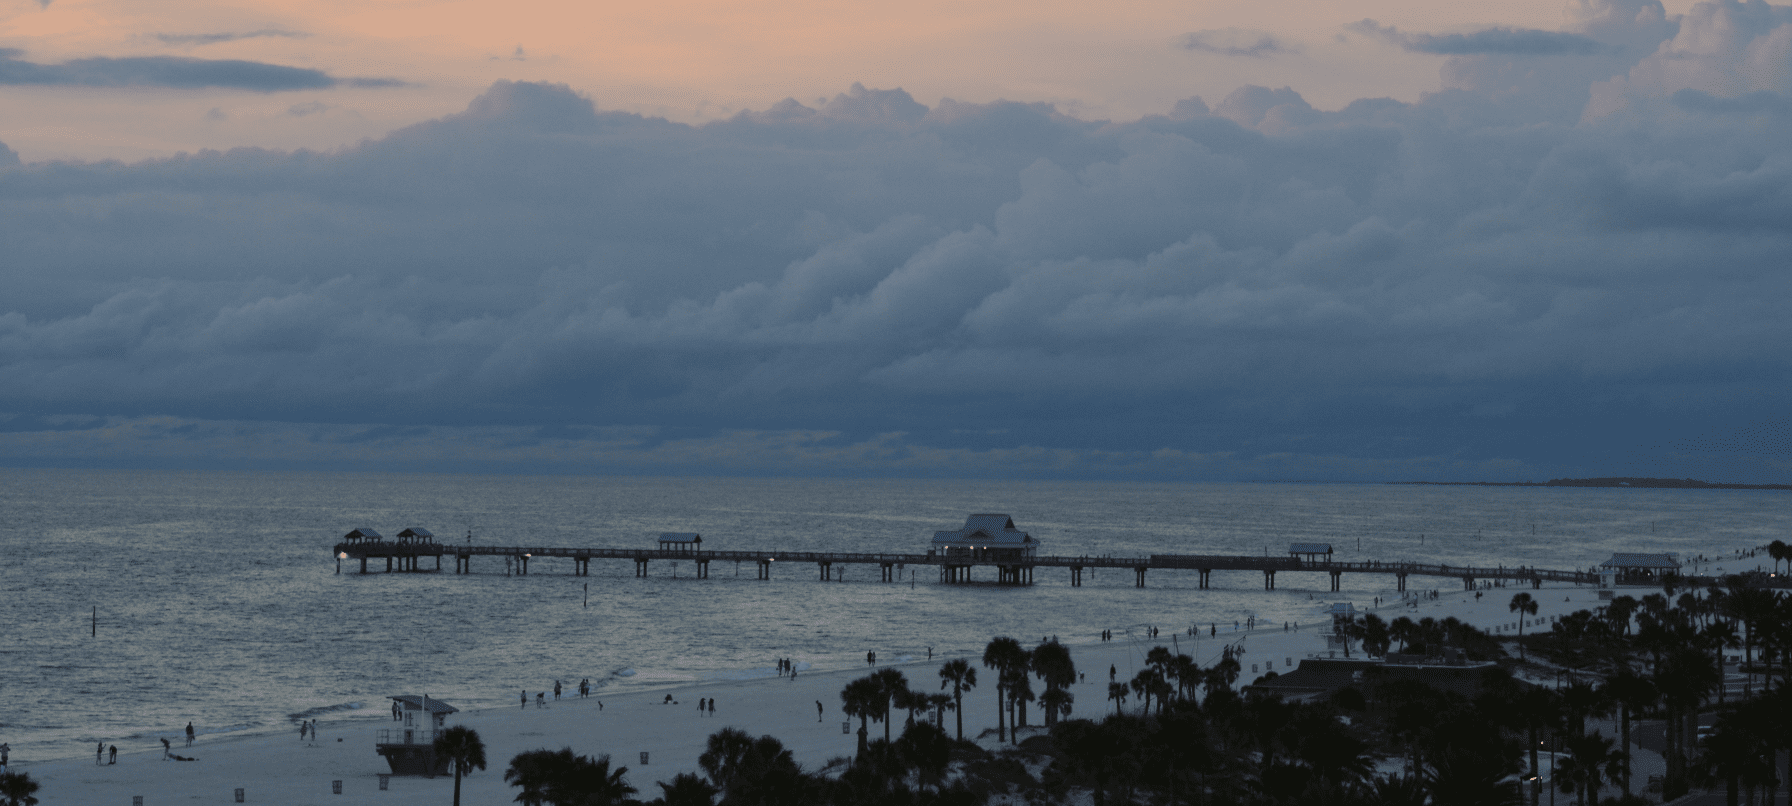 Clearwater beach sunset and pier 60 on thursday may 2 2013 for Pier 60 fishing